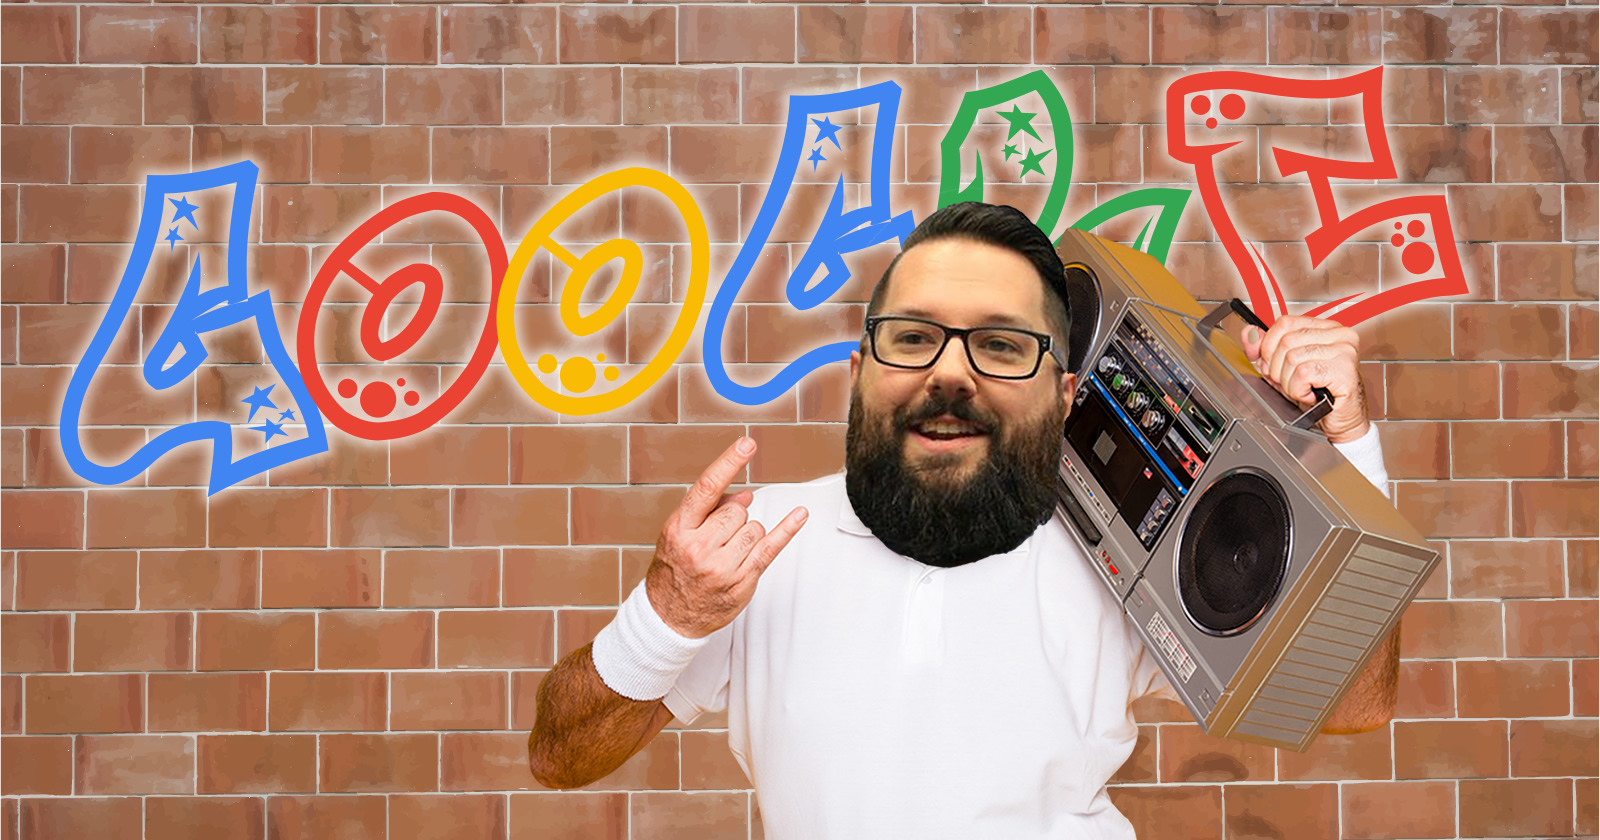 Patent: Google Going Old School with Local SEO, But In A New Way via @beanstalkim